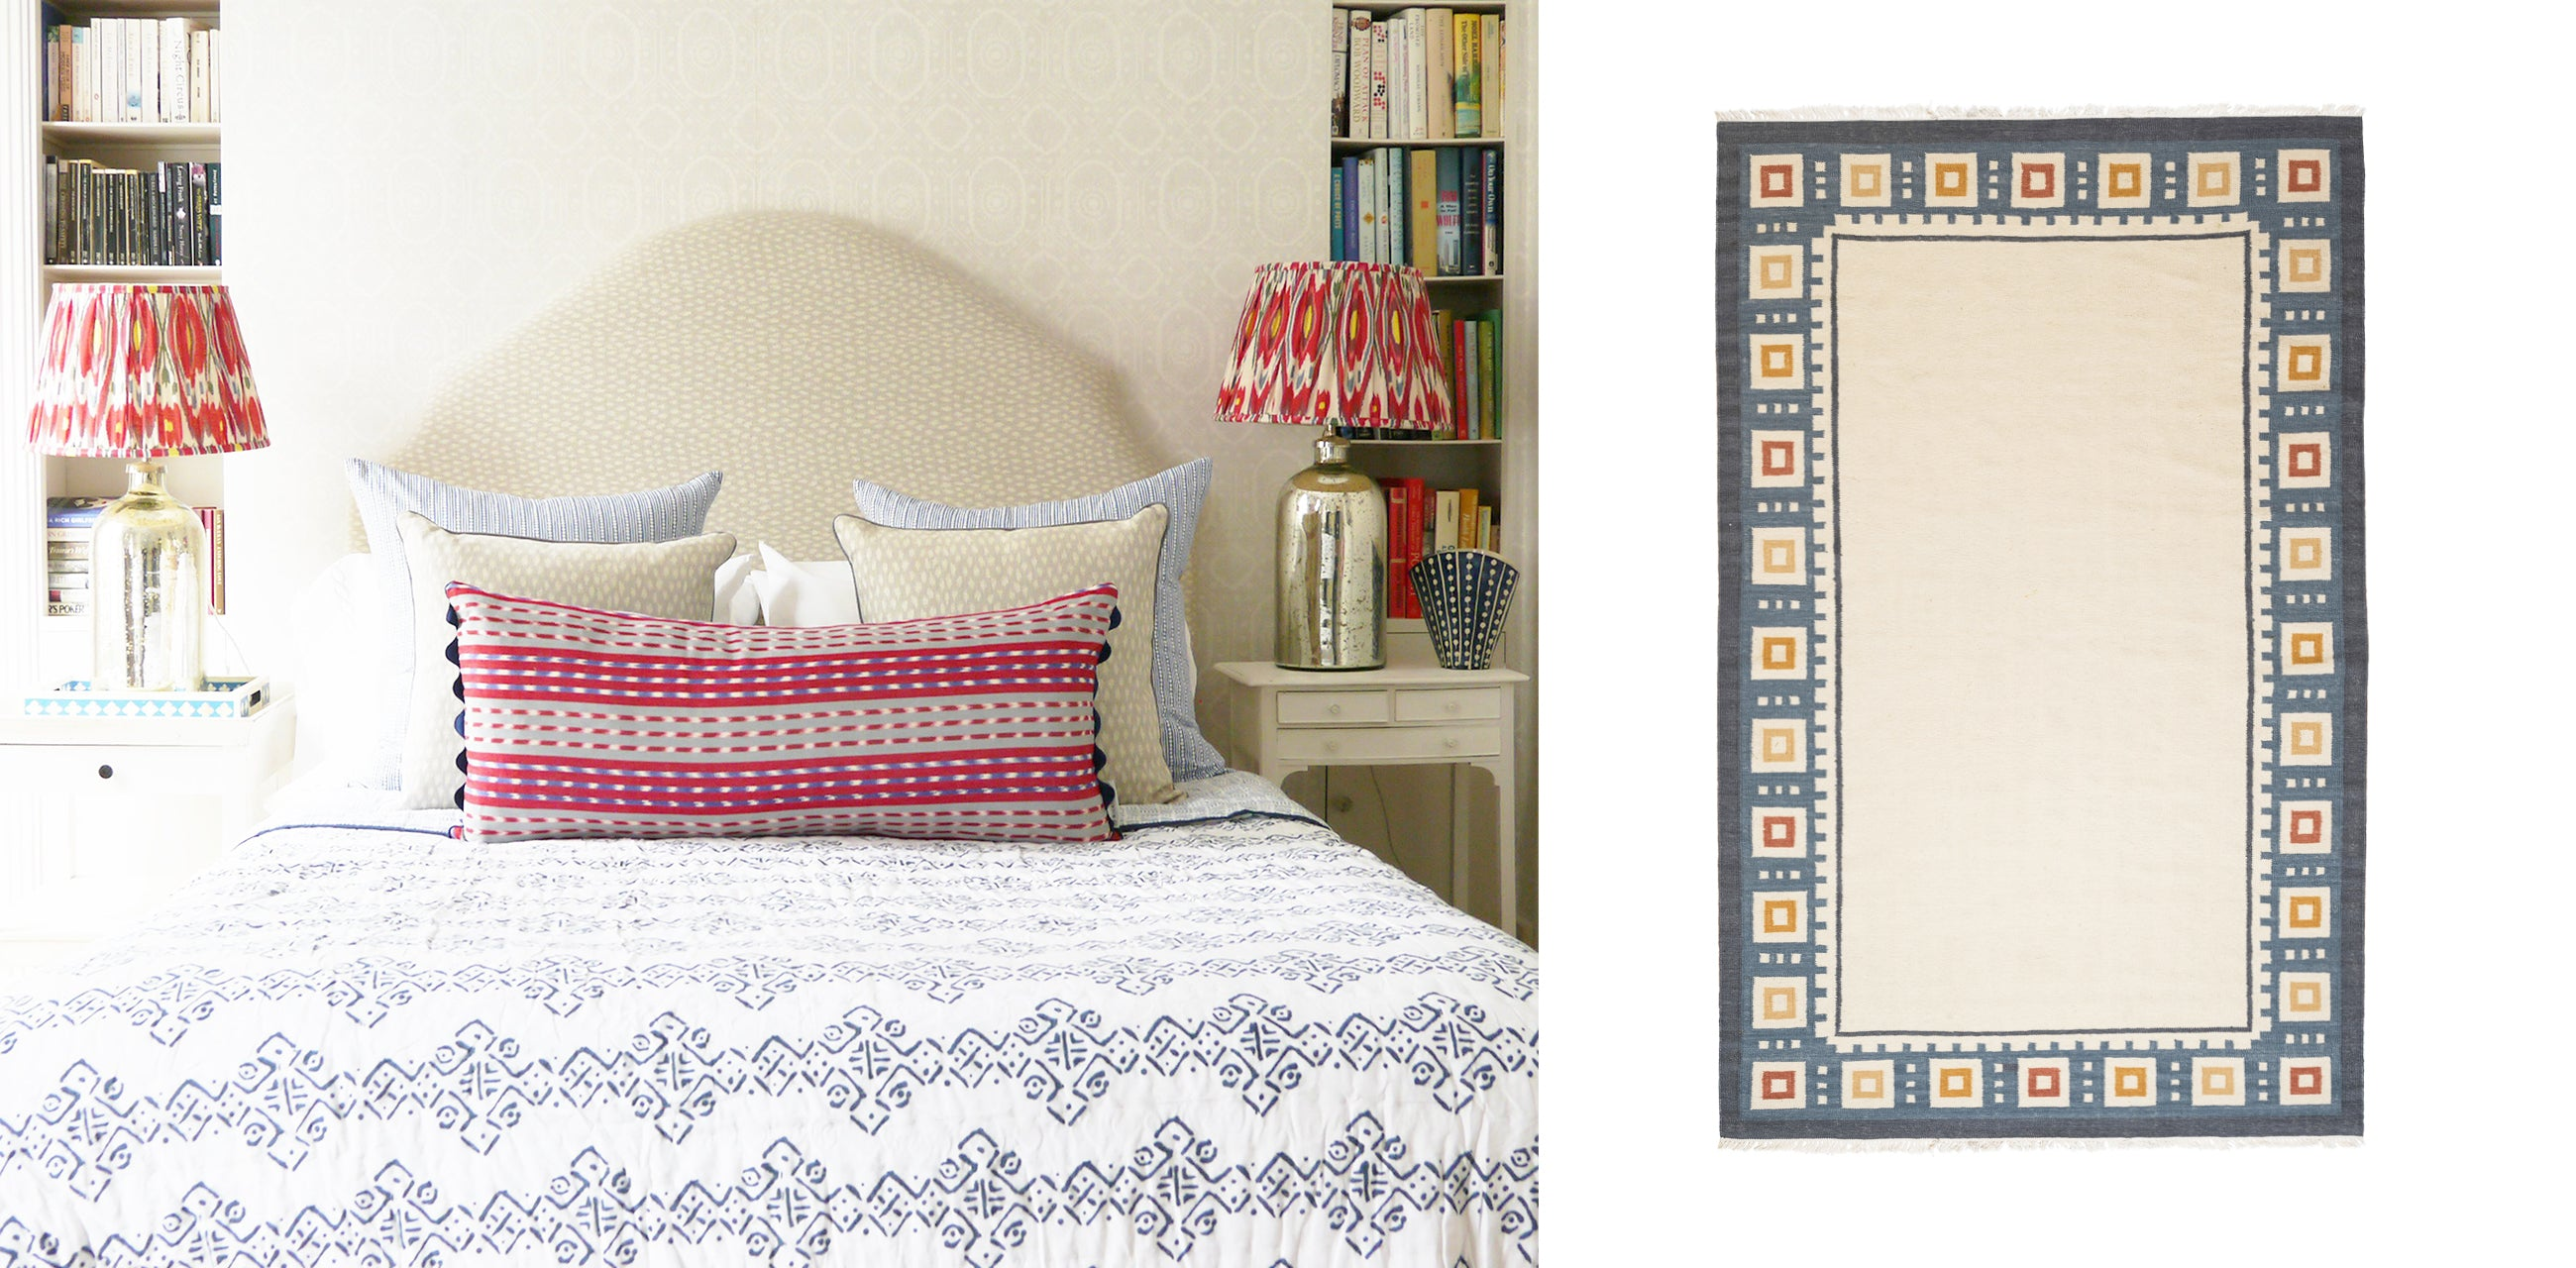 Shop wicklewood reversible quilts, extra oblong jaspe cushions and rugs